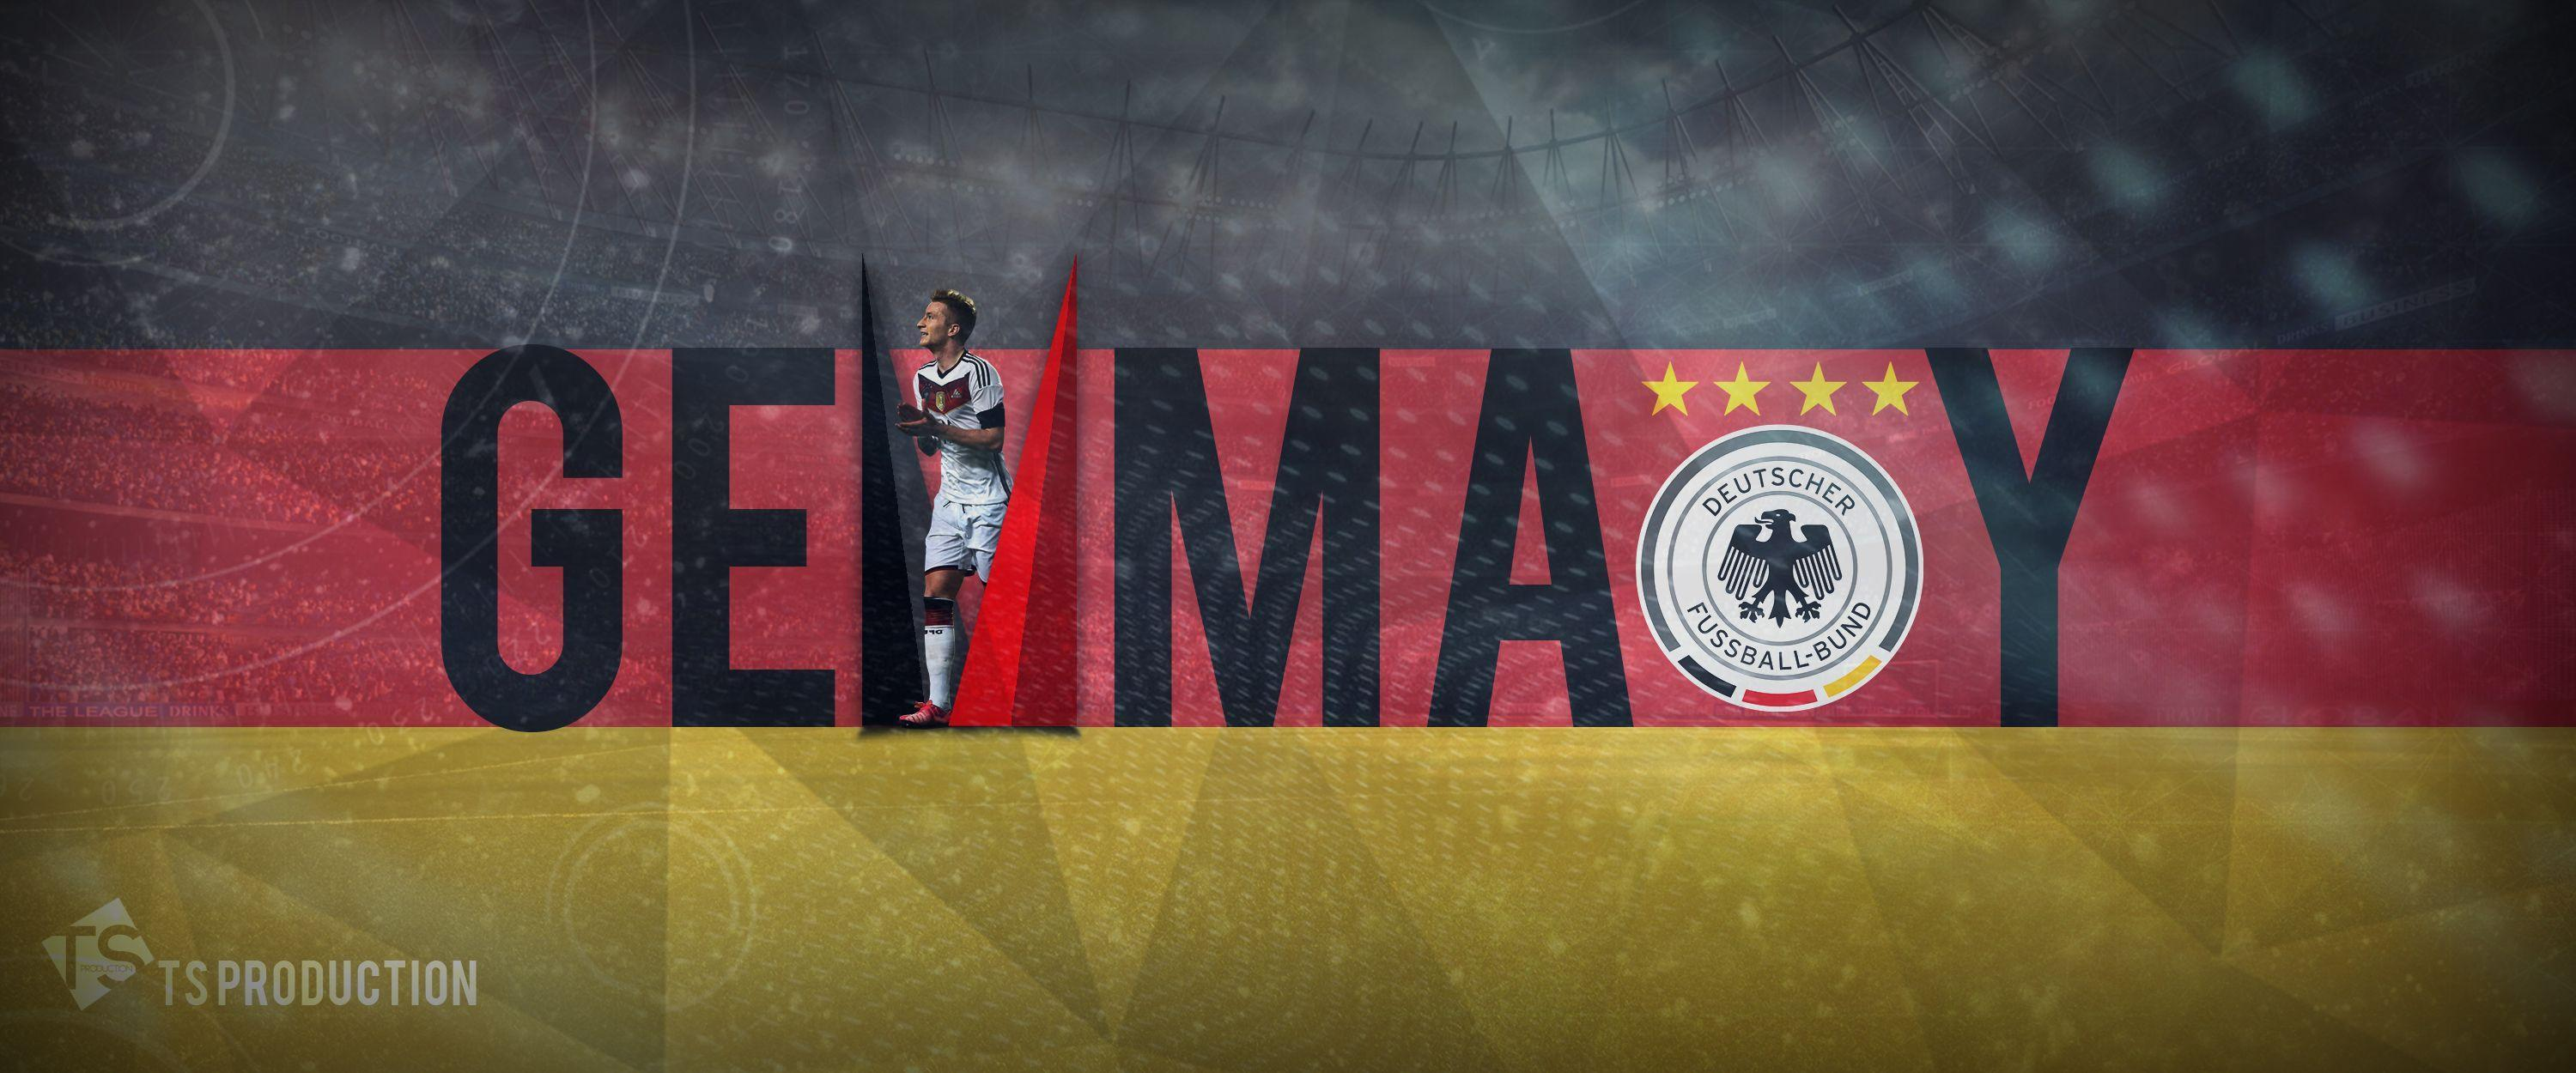 Germany National Football Team Wallpapers